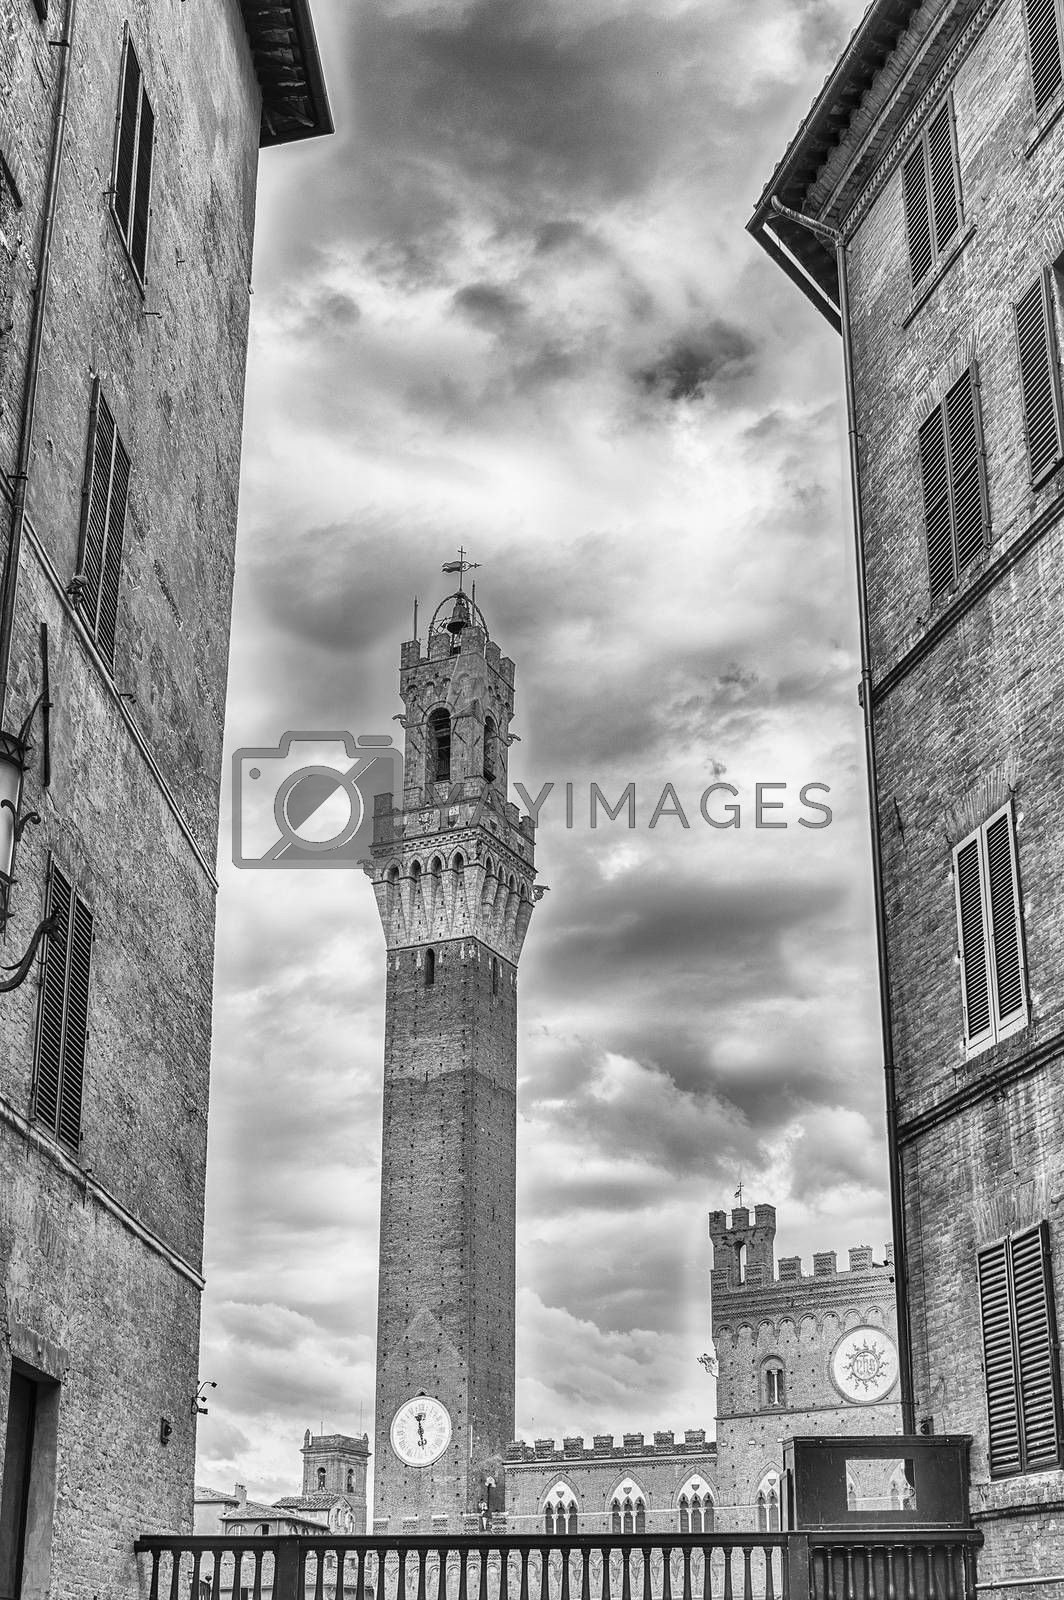 View of Torre del Mangia medieval tower, located in Piazza del Campo, it is one of the most iconic landmark of Siena, Italy